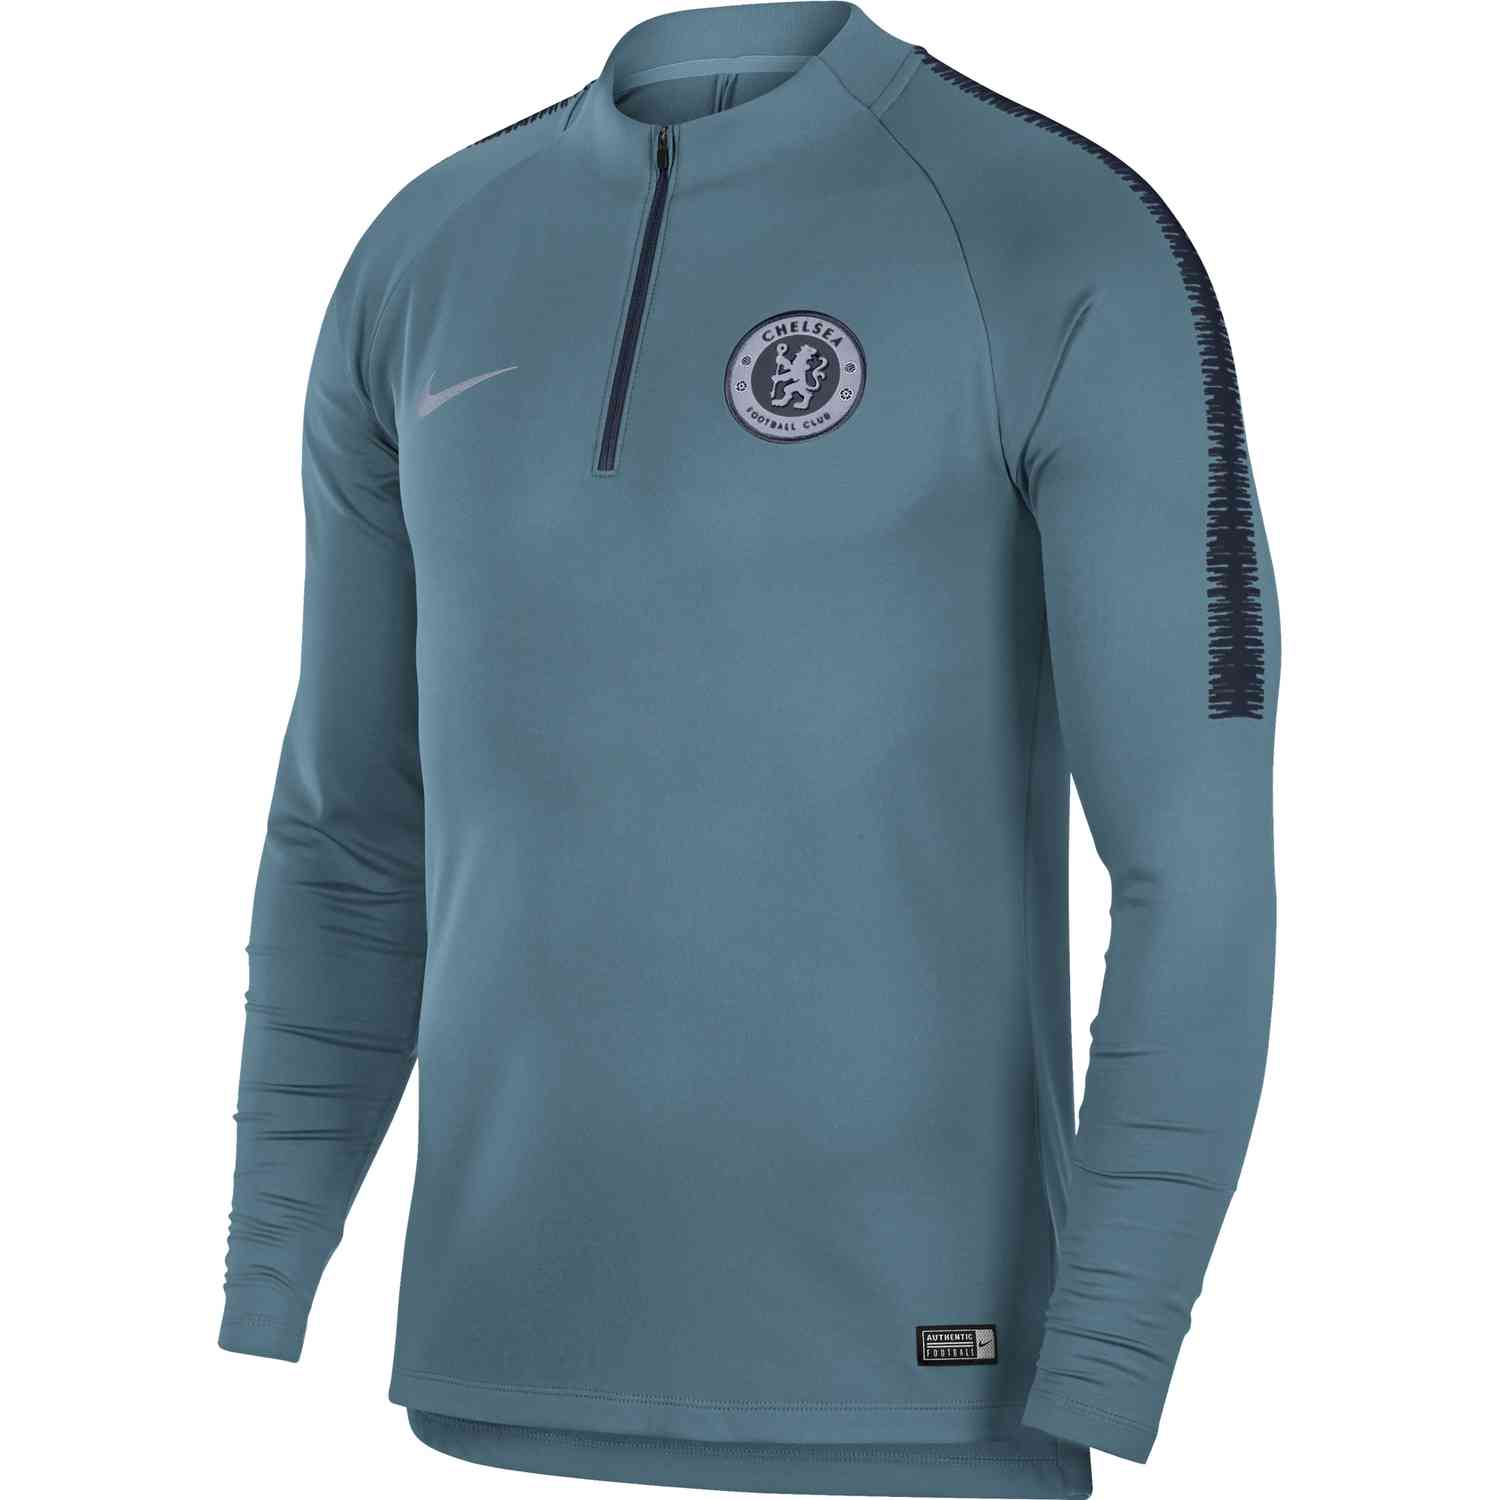 quality design b3866 8efcf Nike Chelsea Squad Drill Top - Celestial Teal/Obsidian